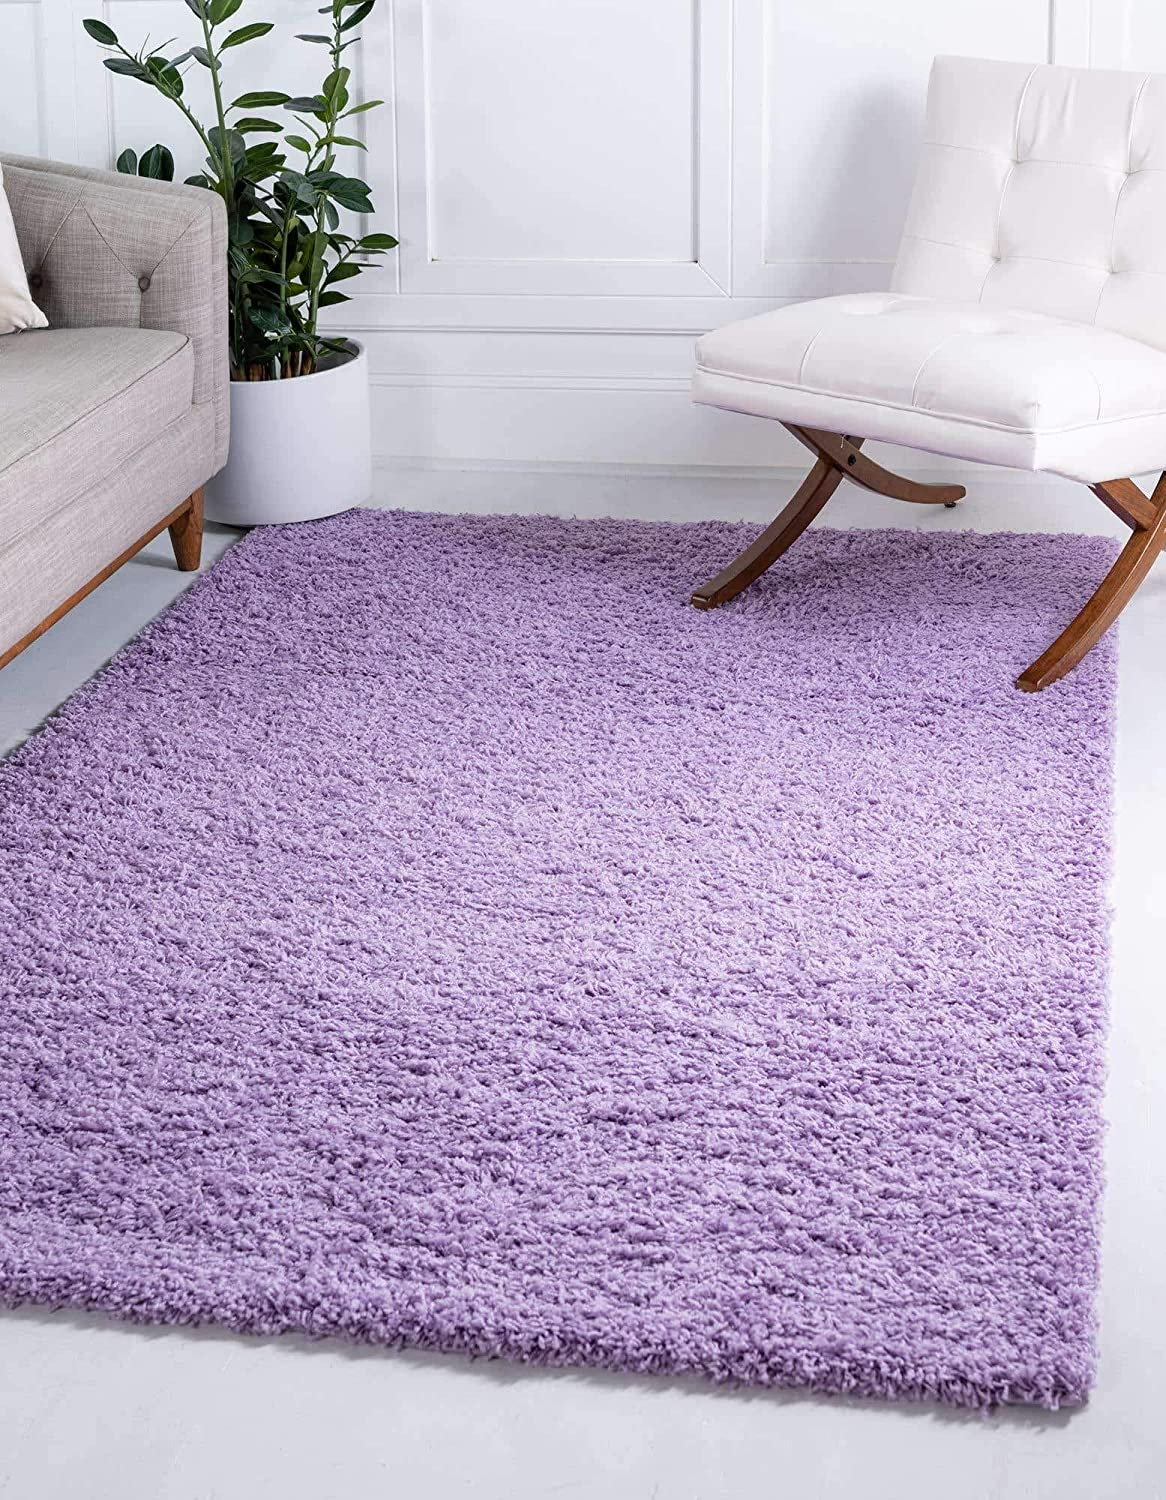 Unique Loom Solo Solid Shag Collection Modern Plush Lilac Area Rug (3' 3 x 5' 3)